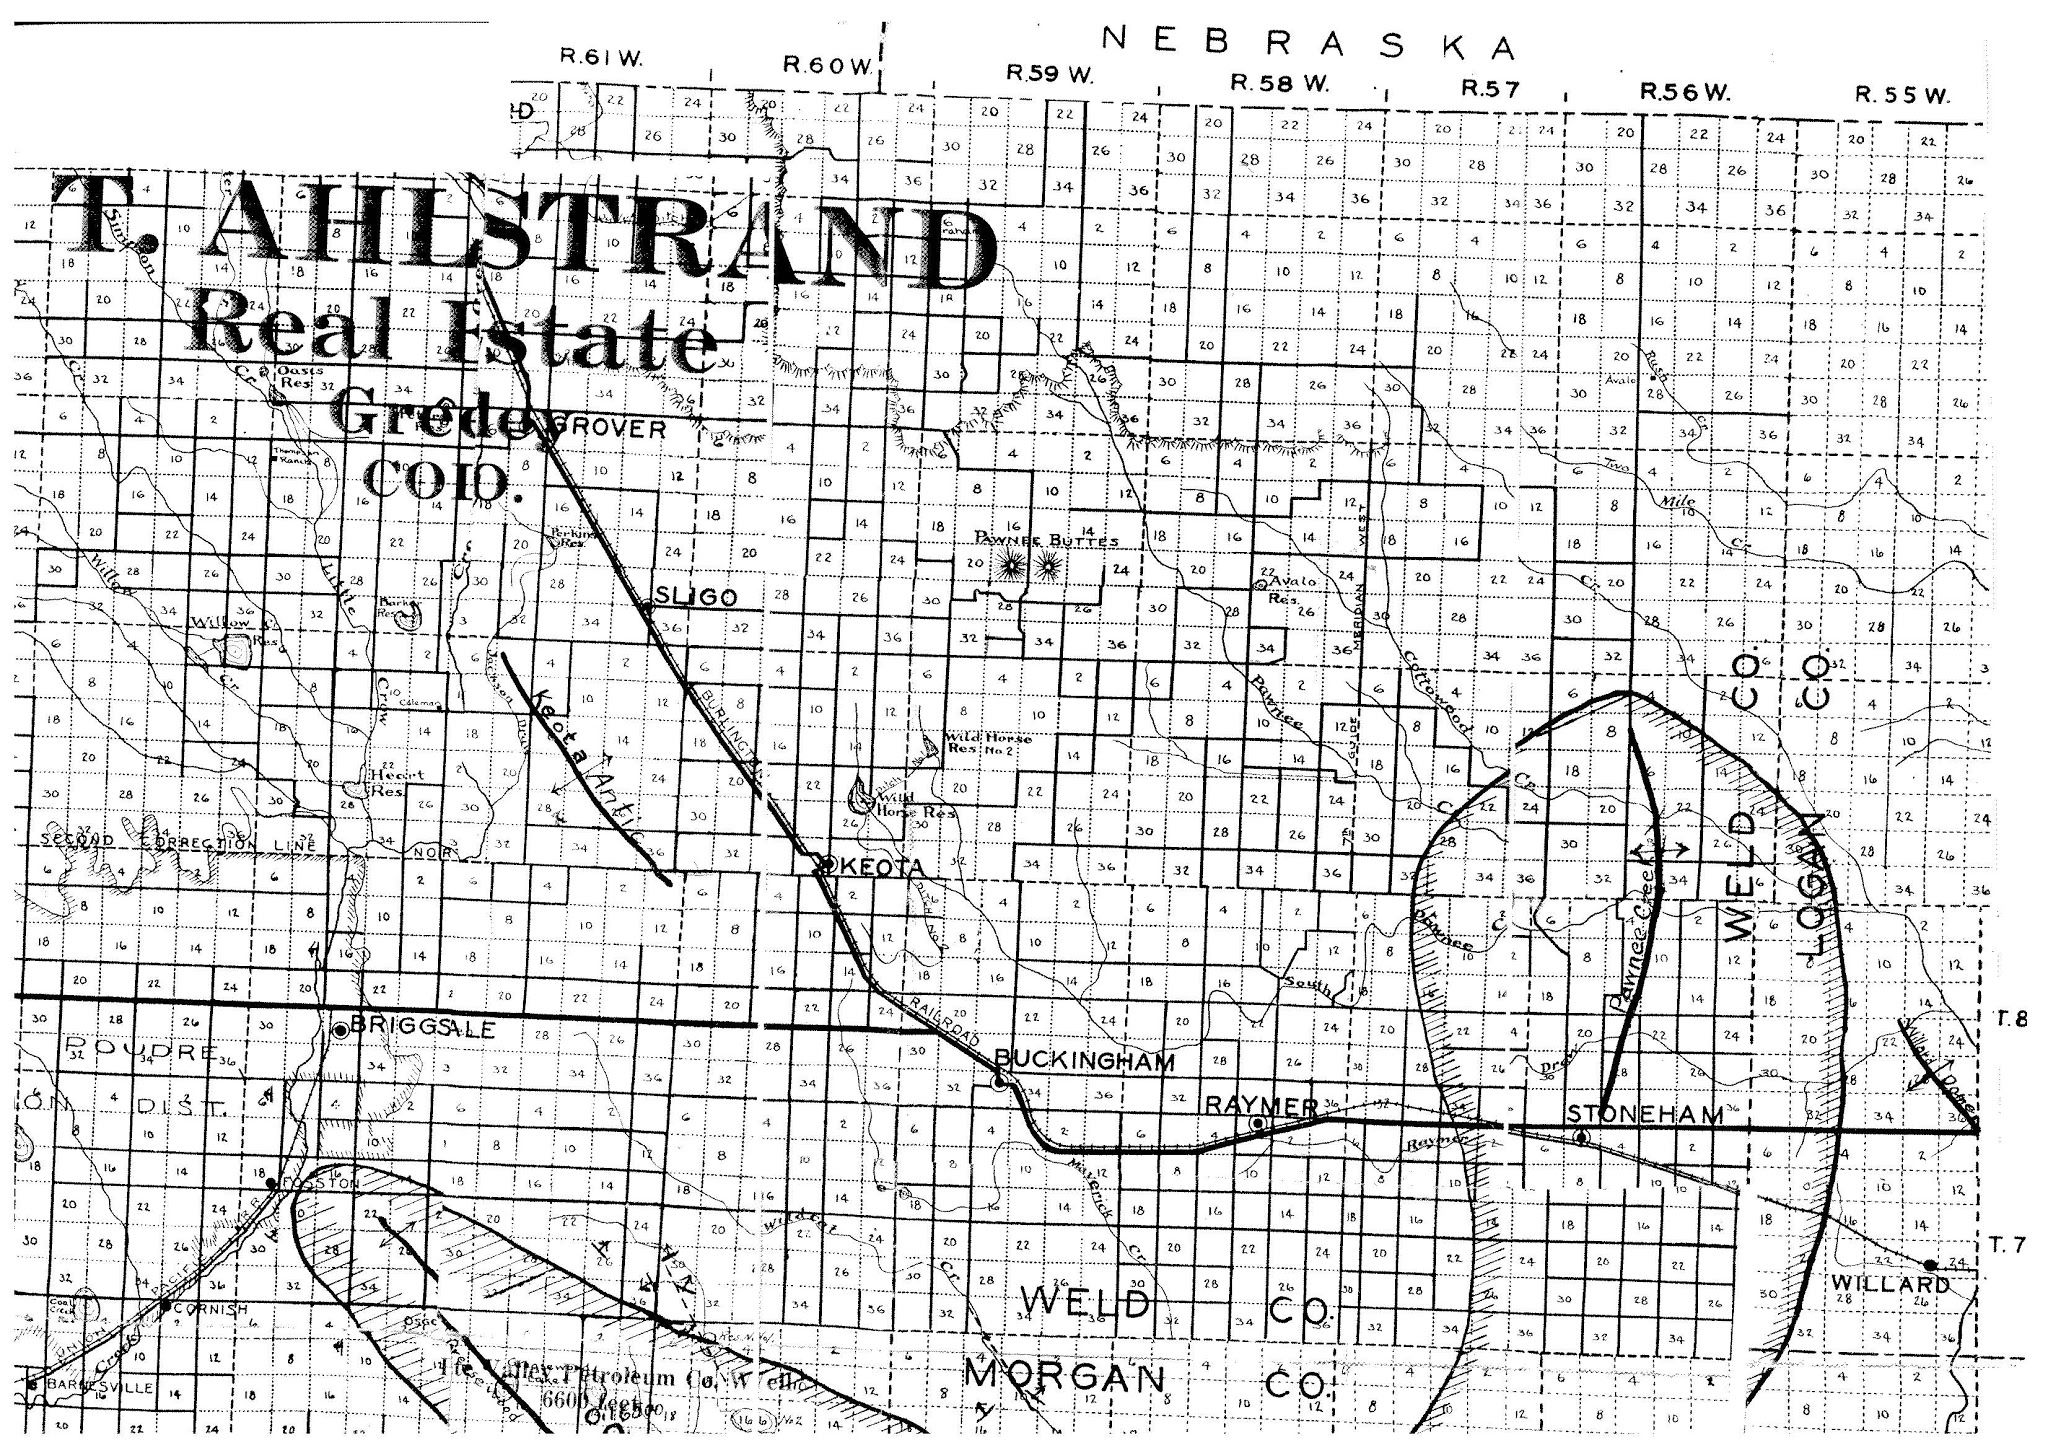 Ahlstrand map section showing land parcels in Northern Colorado